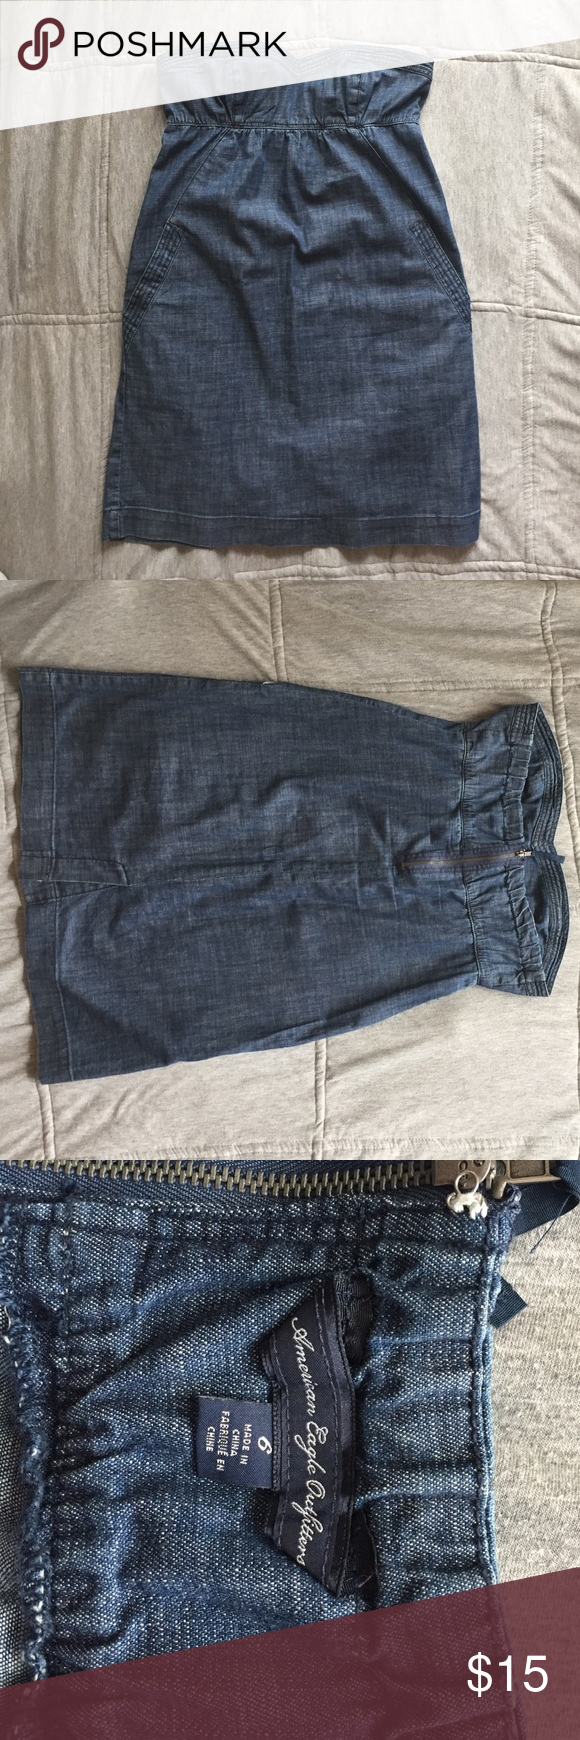 American Eagle Strapless Denim Dress Strapless denim dress by American Eagle. Can easily be dressed up or down. Super cute with booties and jacket for cooler months or sandals in the summer. Has pockets! American Apparel Dresses Strapless